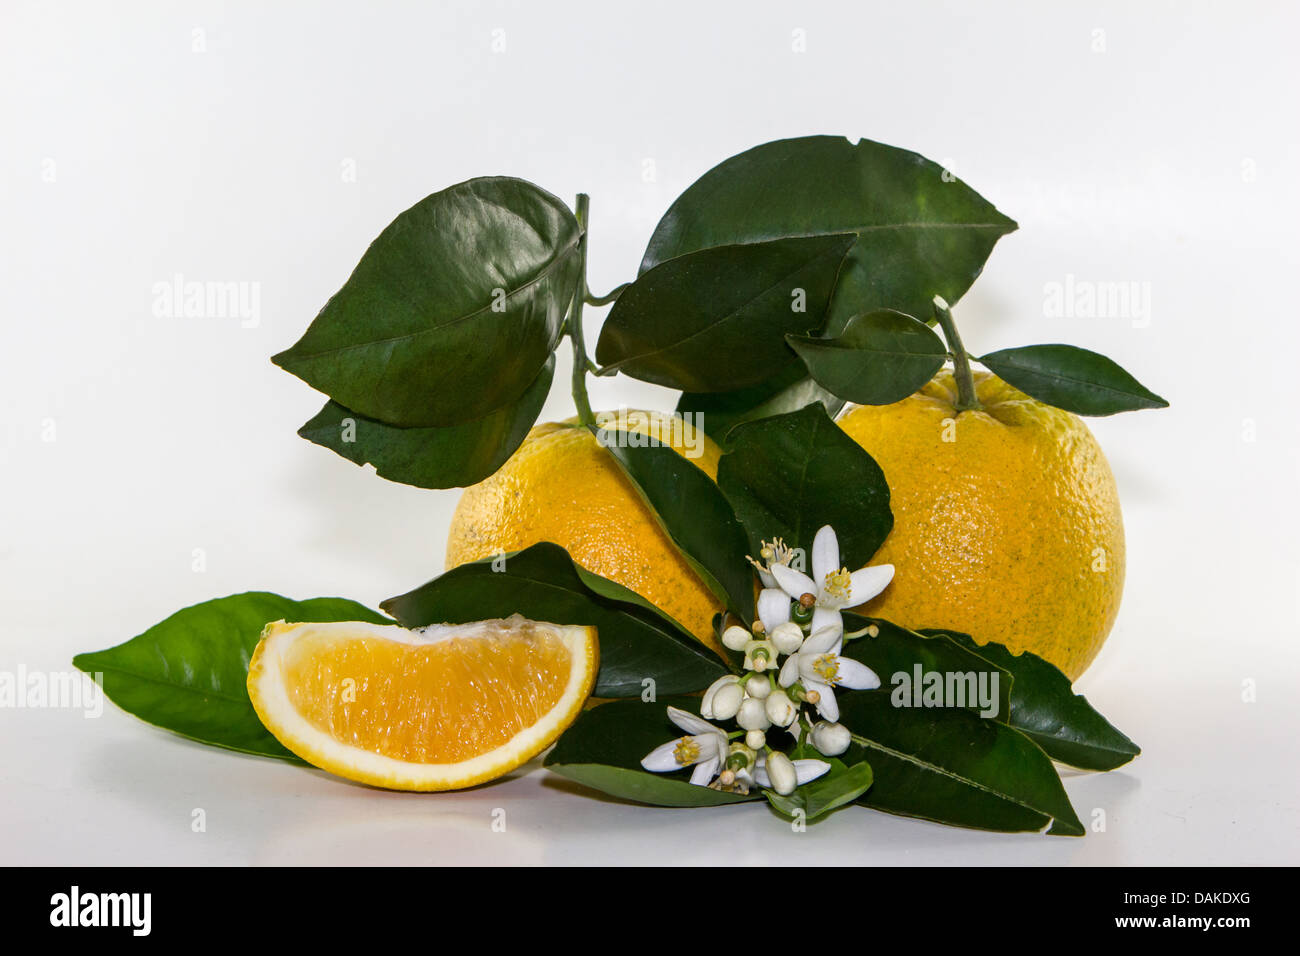 Three generations of oranges from a single tree in Florida.   The bloom, the tiny orange, and the mature fruit. - Stock Image